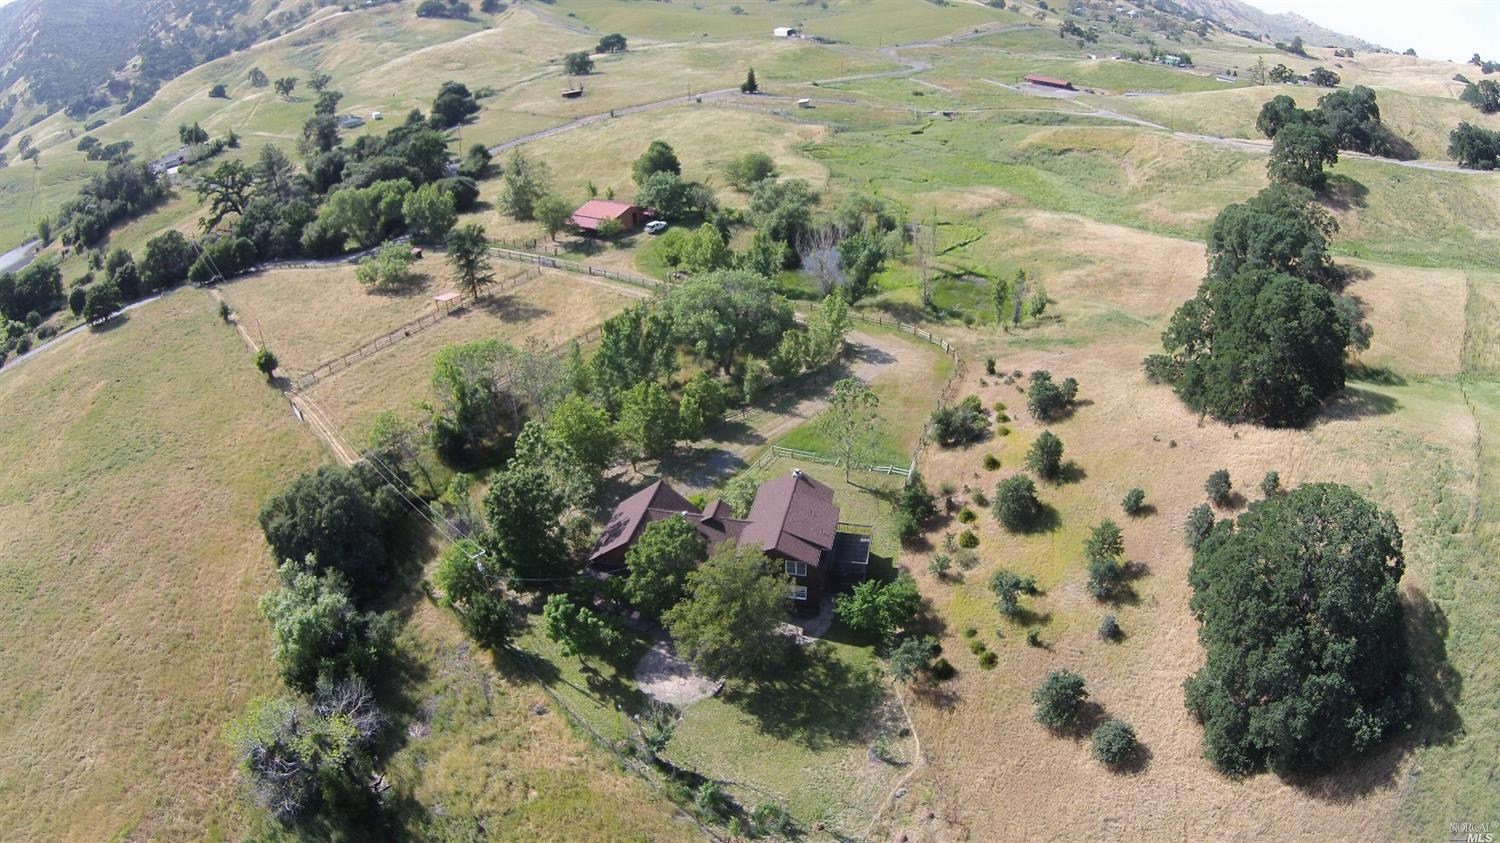 8376 Quail Canyon road Vacaville, CA 95688 - MLS #: 21711294